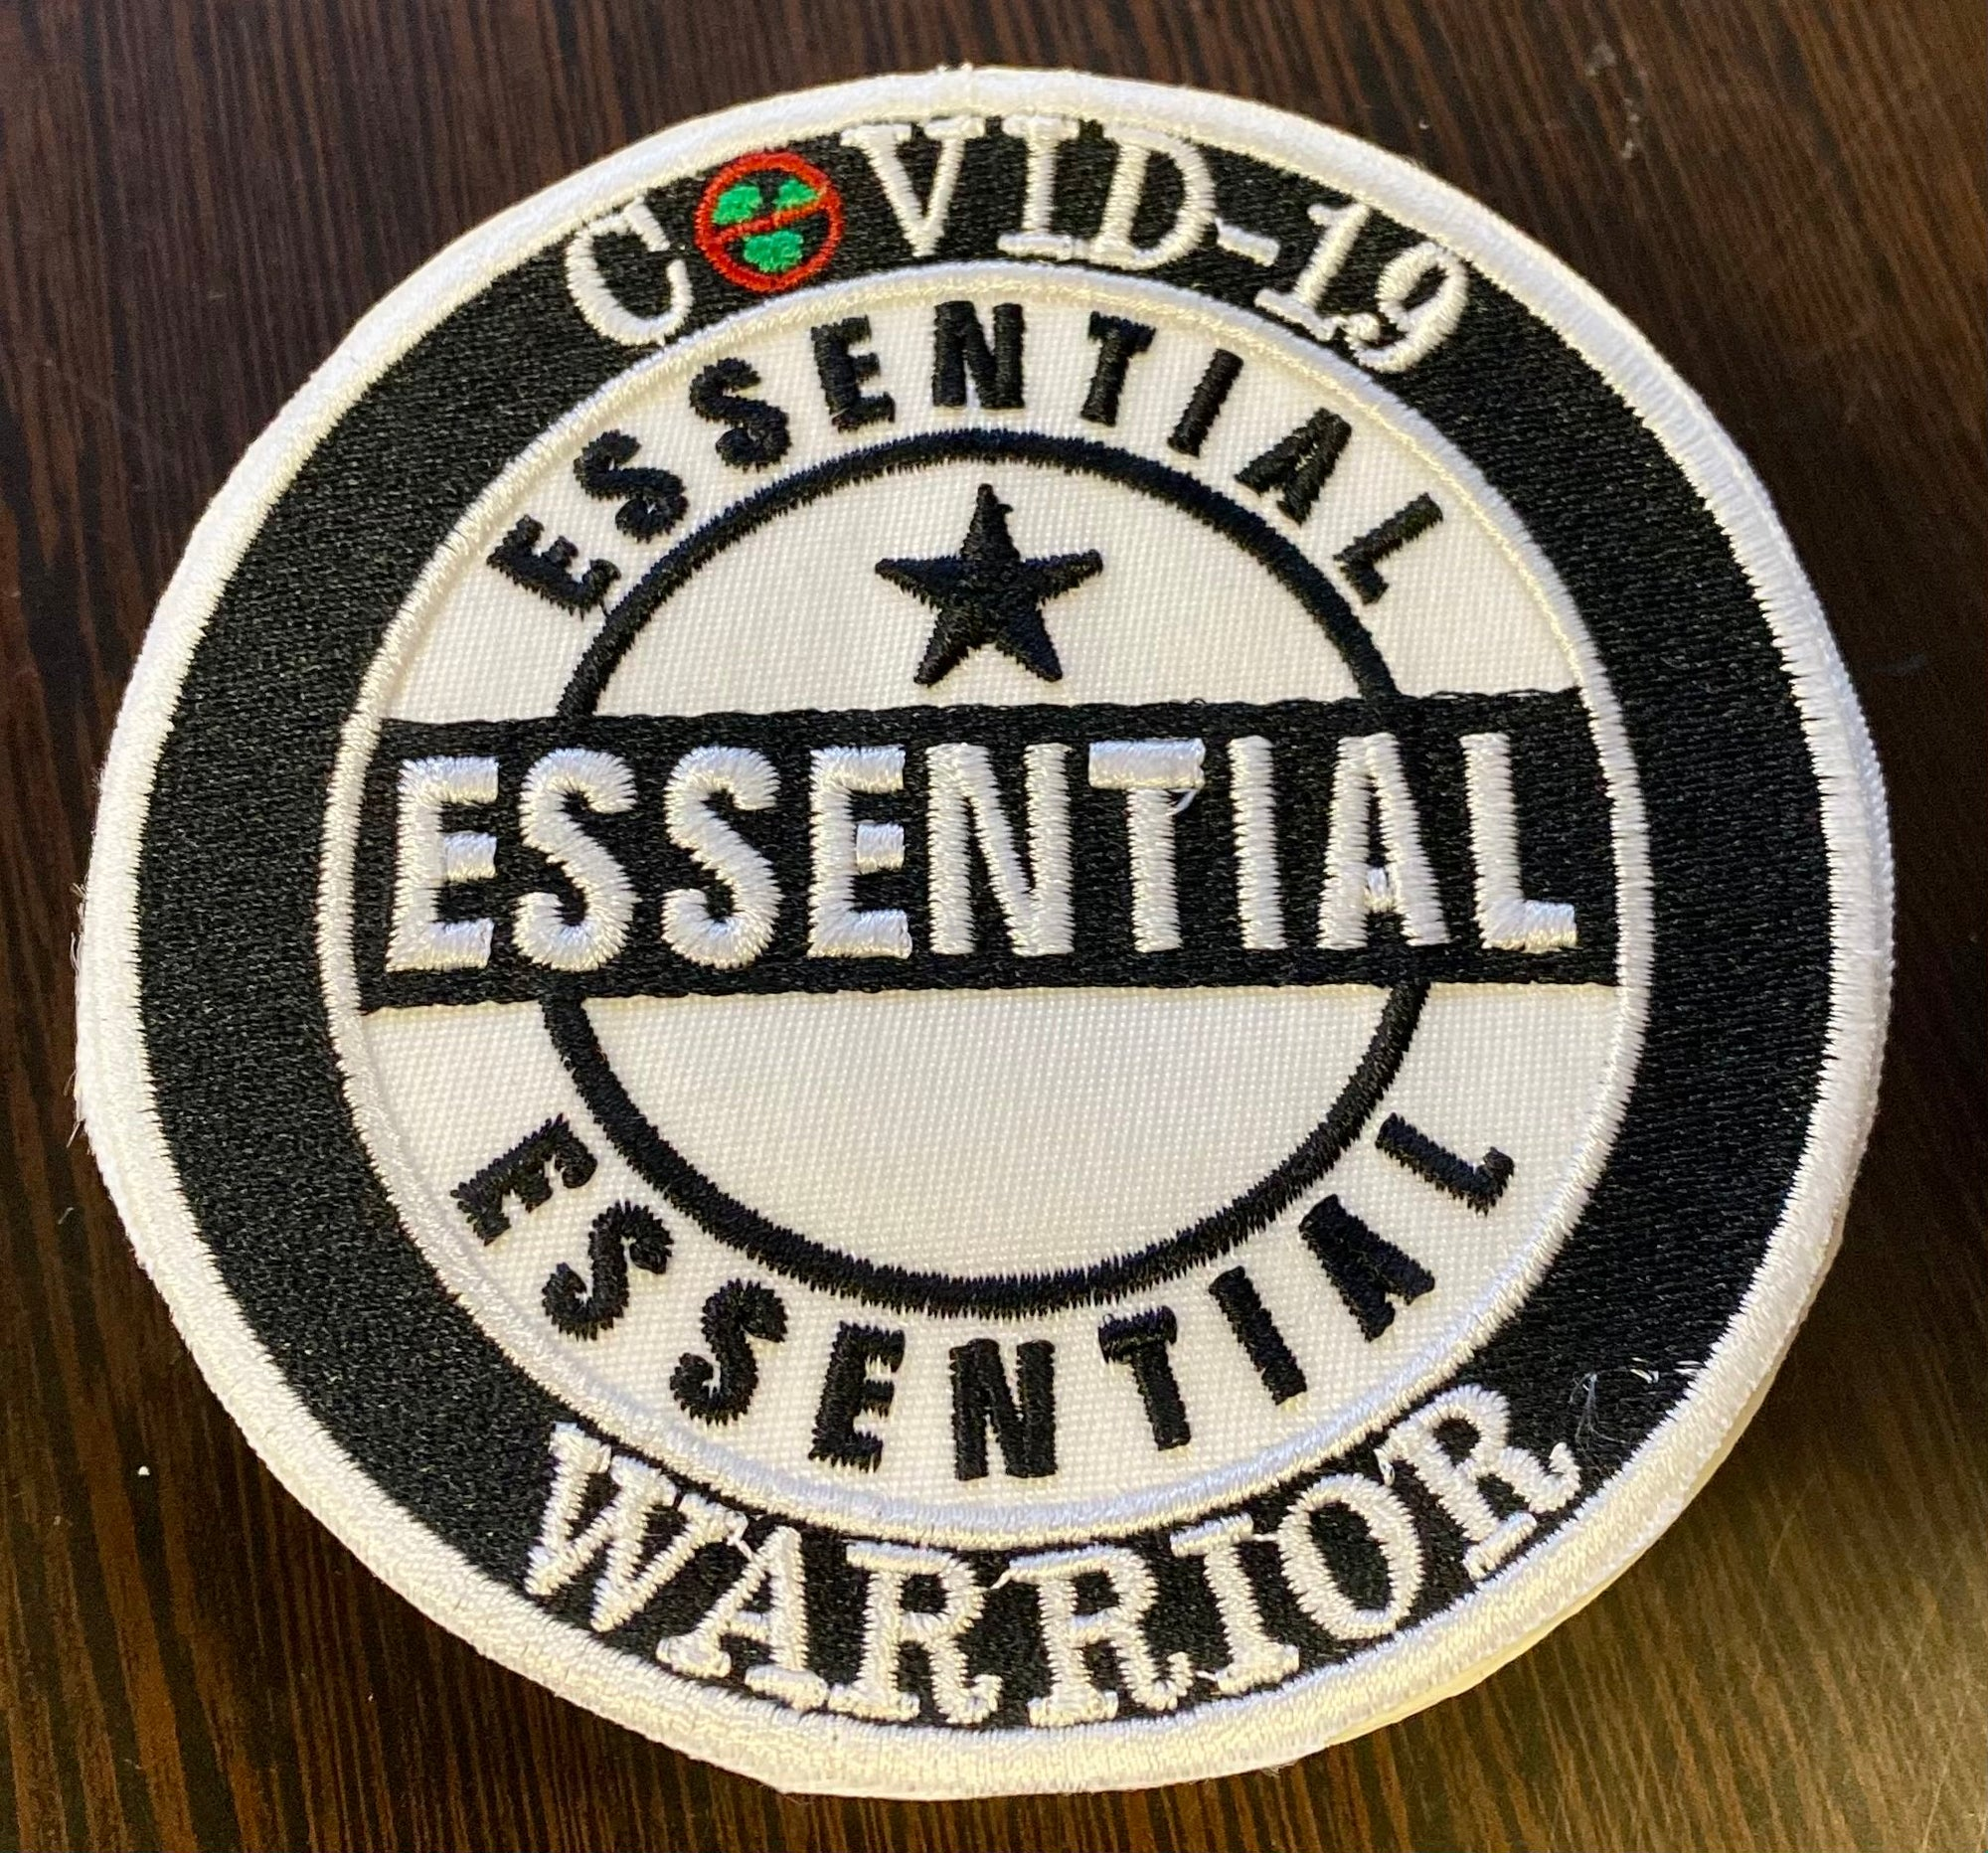 COVID-19 Essential Warrior Patch